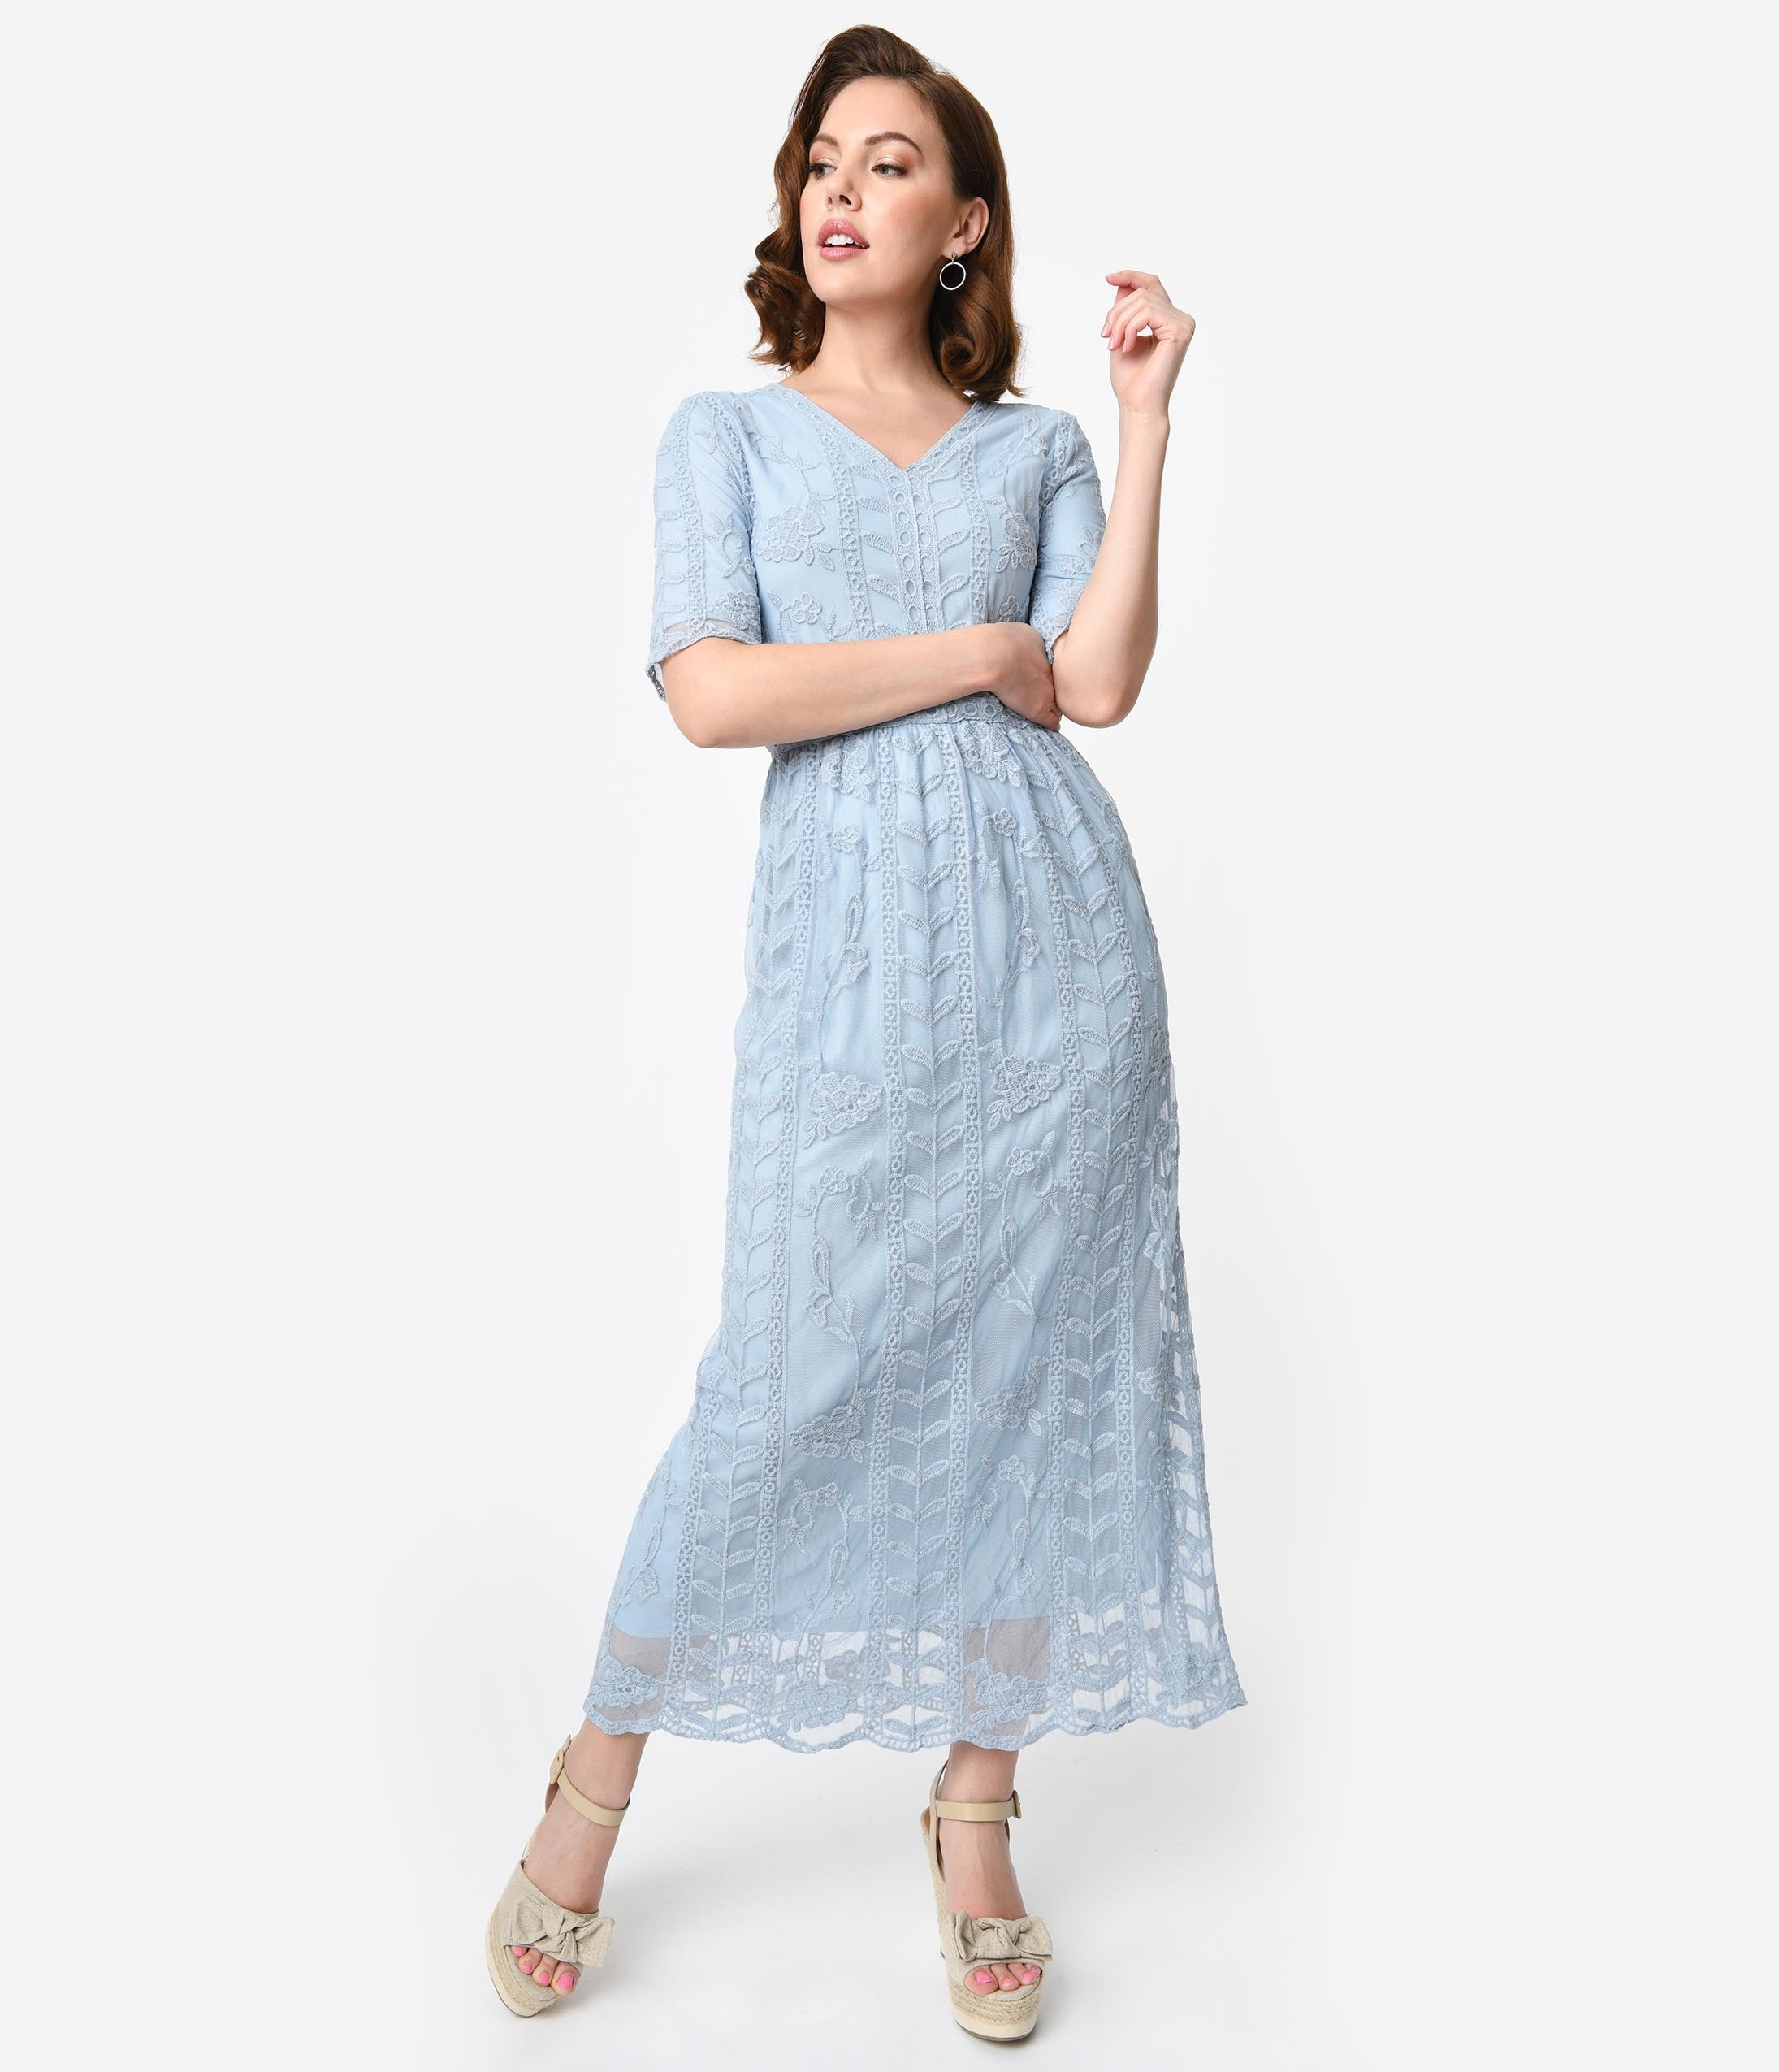 Downton Abbey Inspired Dresses 1940S Style Antique Blue Lace Short Sleeved Long Dress $44.00 AT vintagedancer.com